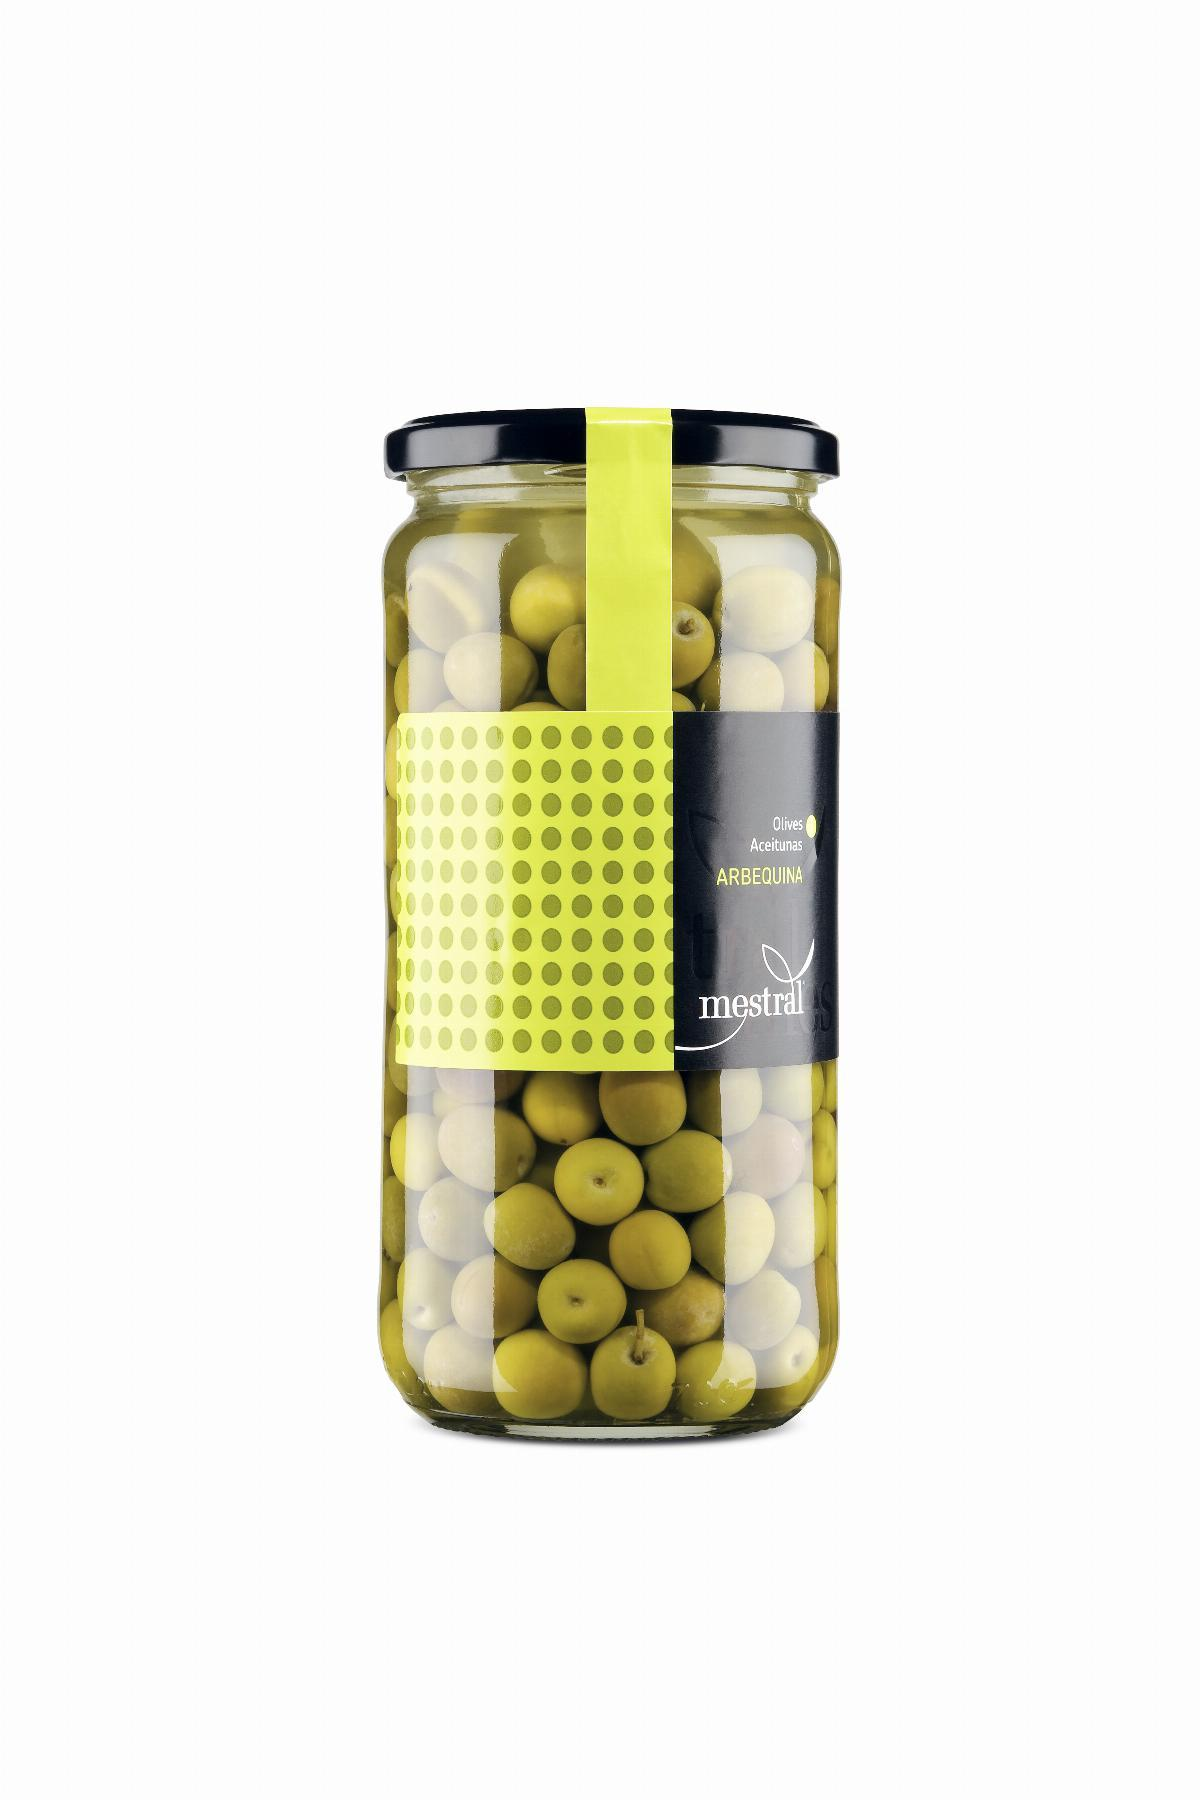 Olives Arbequina Mestral, pot transparent 440g, CAT-ES-EN-FR-DE